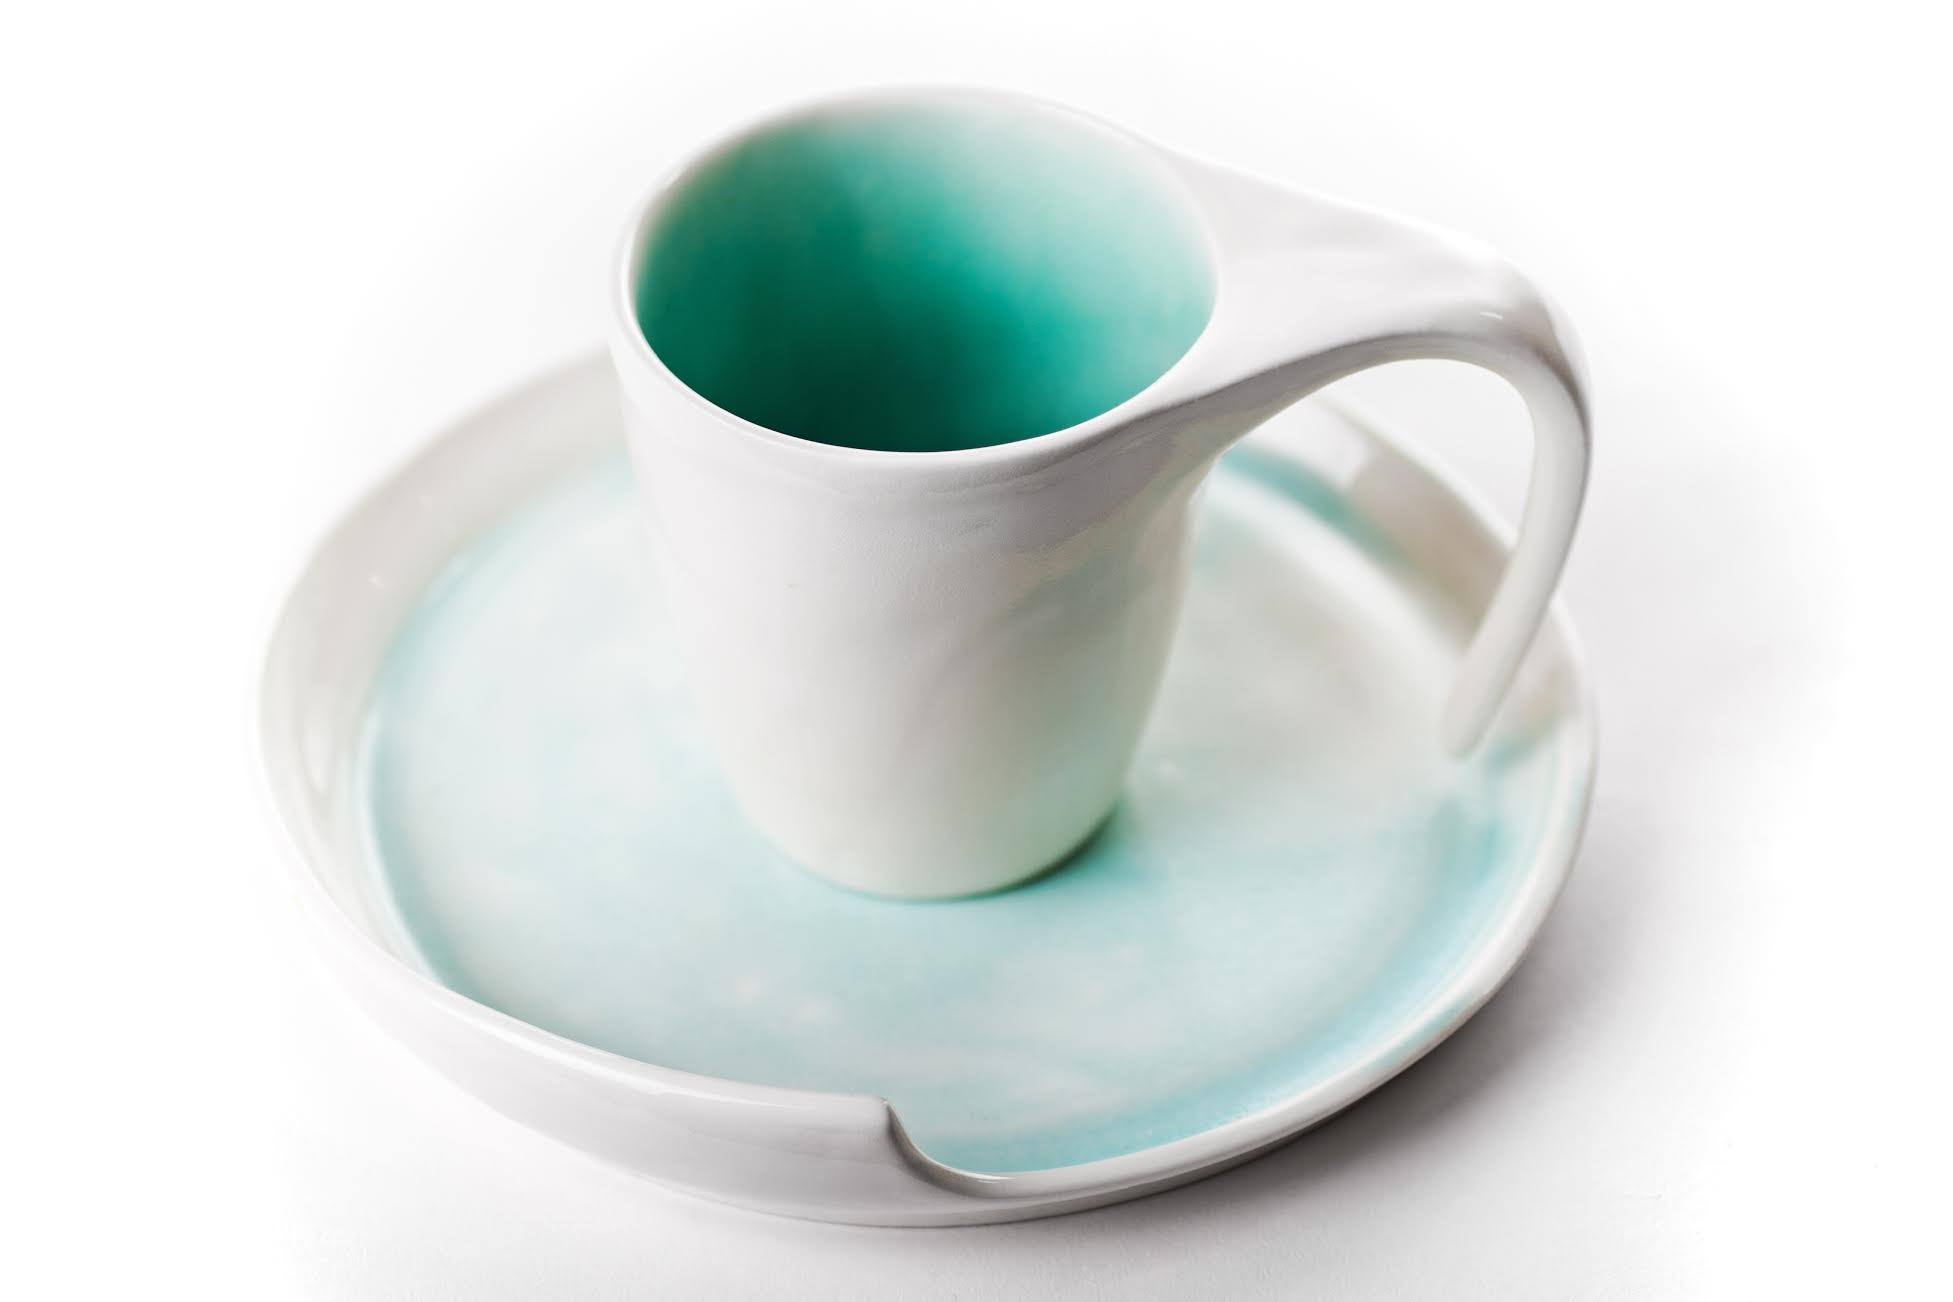 Cup and saucer by Thordis Baldurs